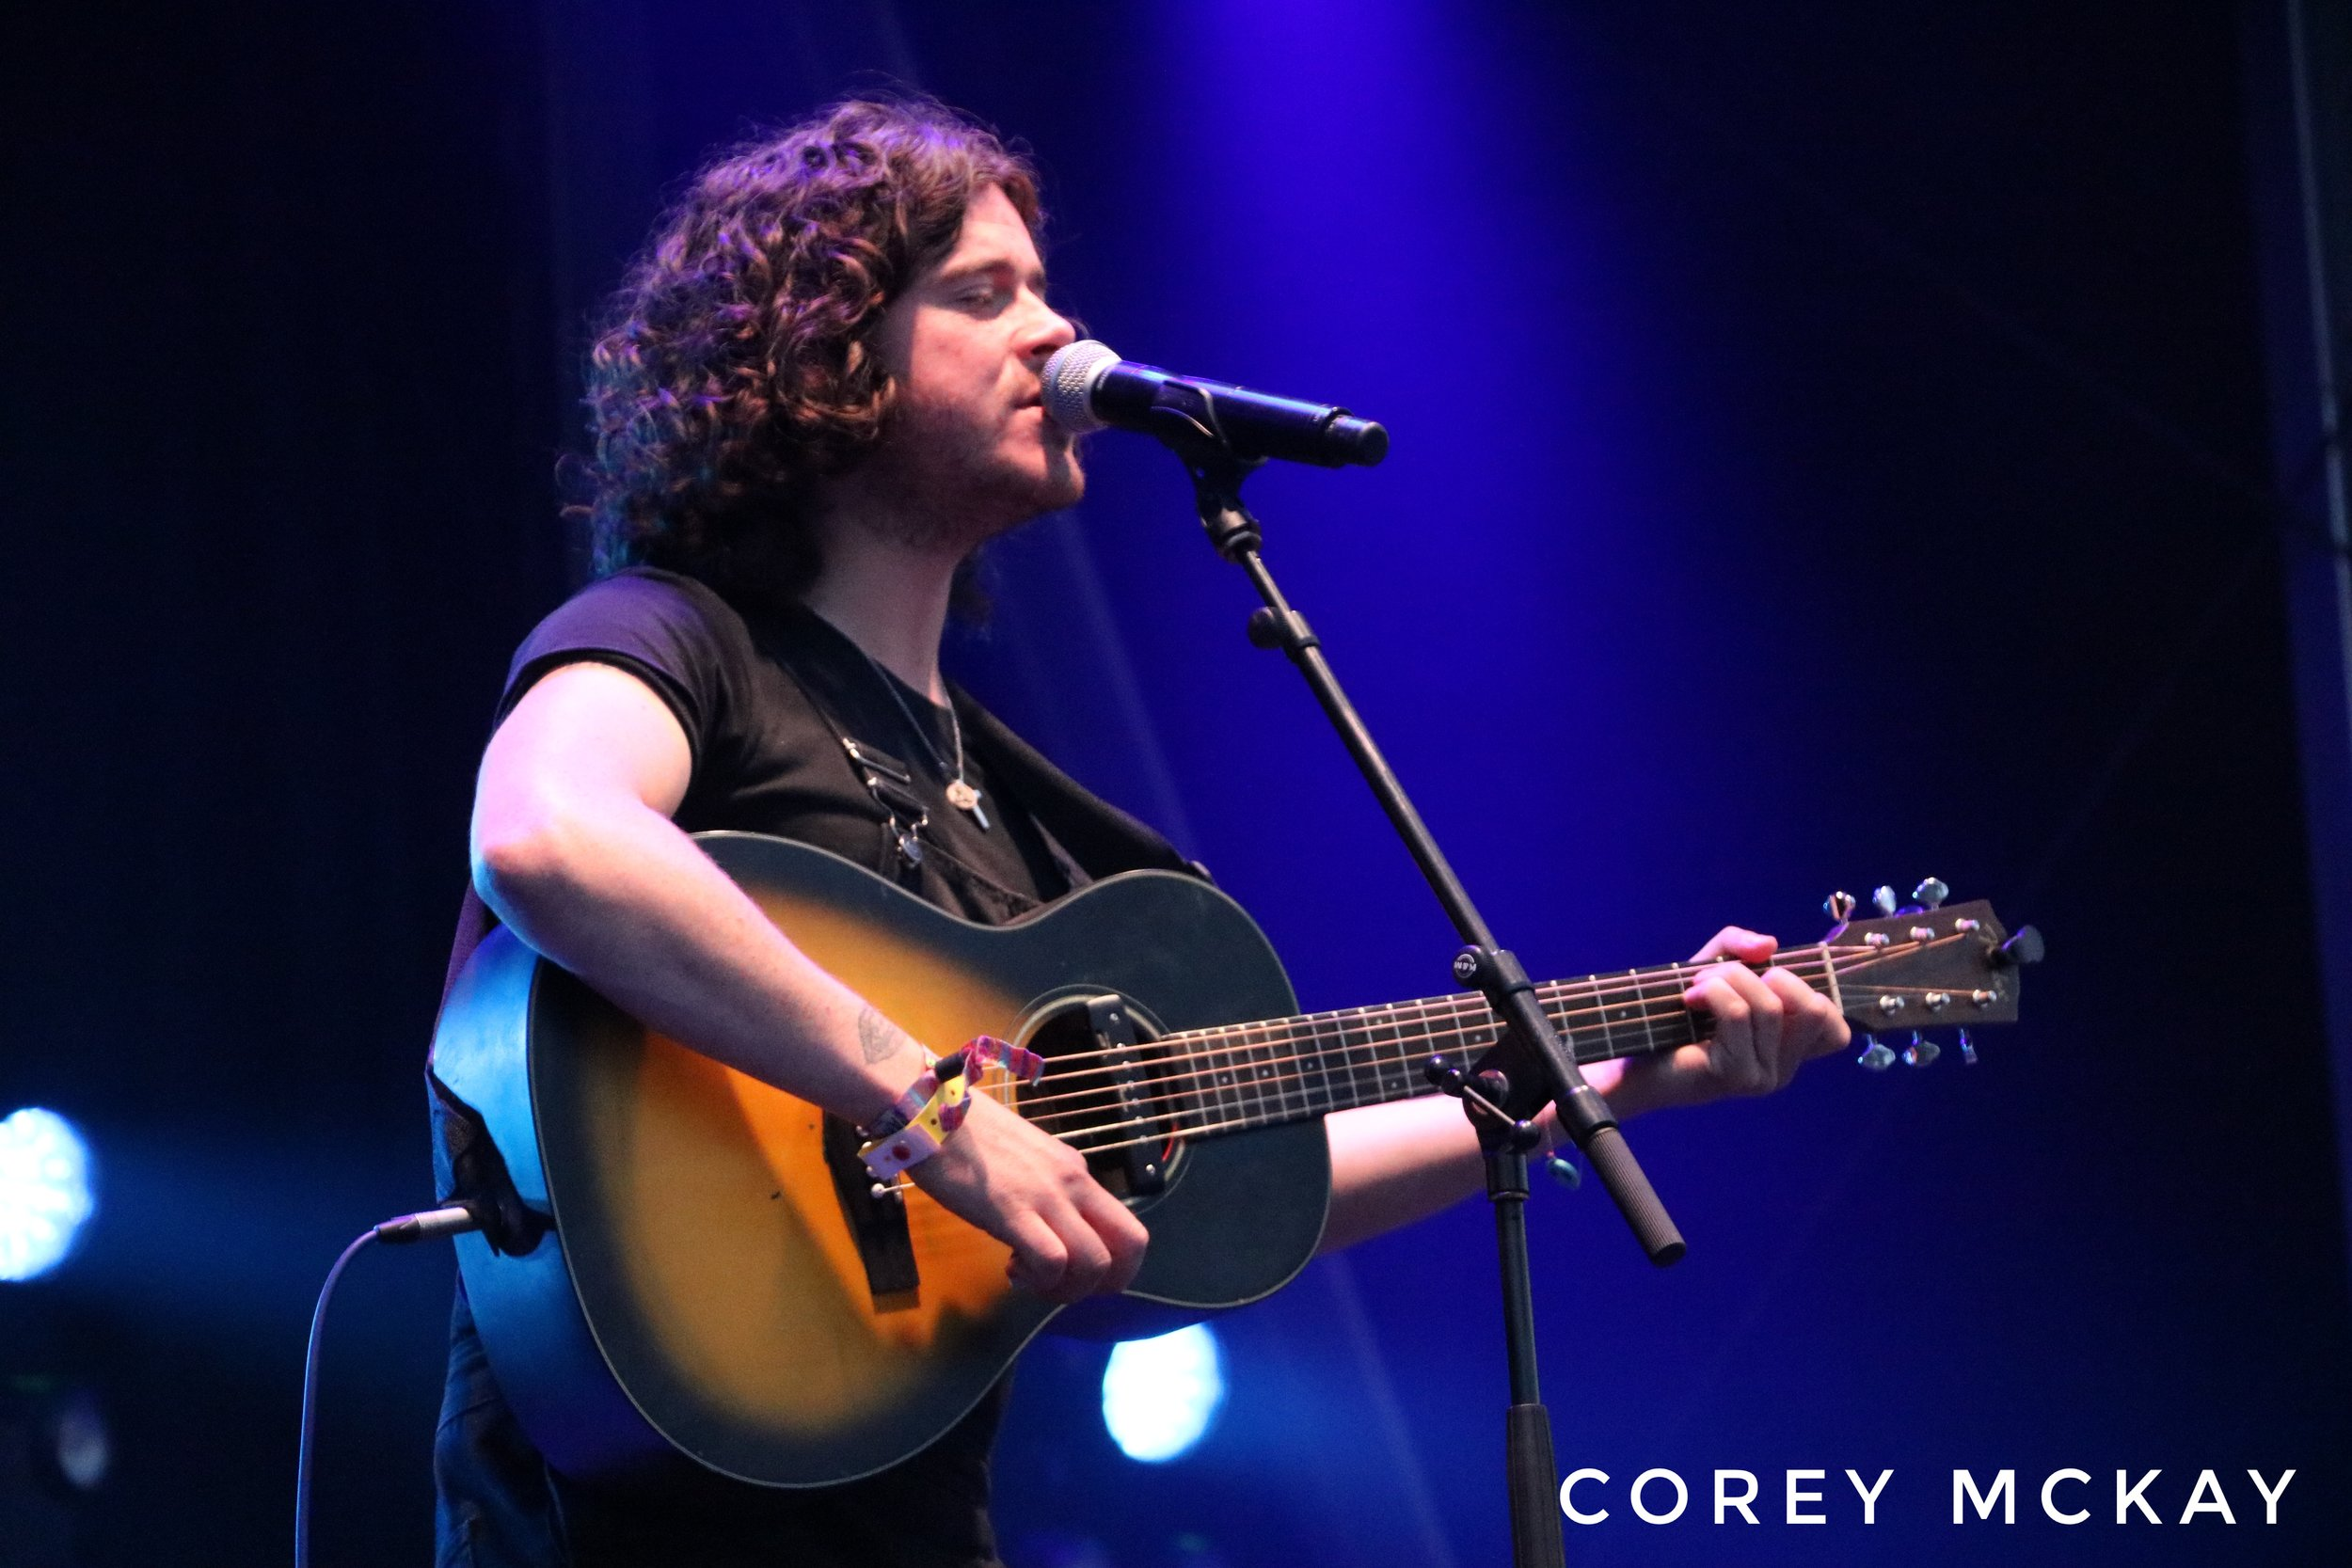 THE KYLE FALCONER BAND - PERFORMING AT CARNIVAL FIFTY SIX FESTIVAL 2017 - 13/08/2017  PICTURE BY: COREY MCKAY PHOTOGRAPHY